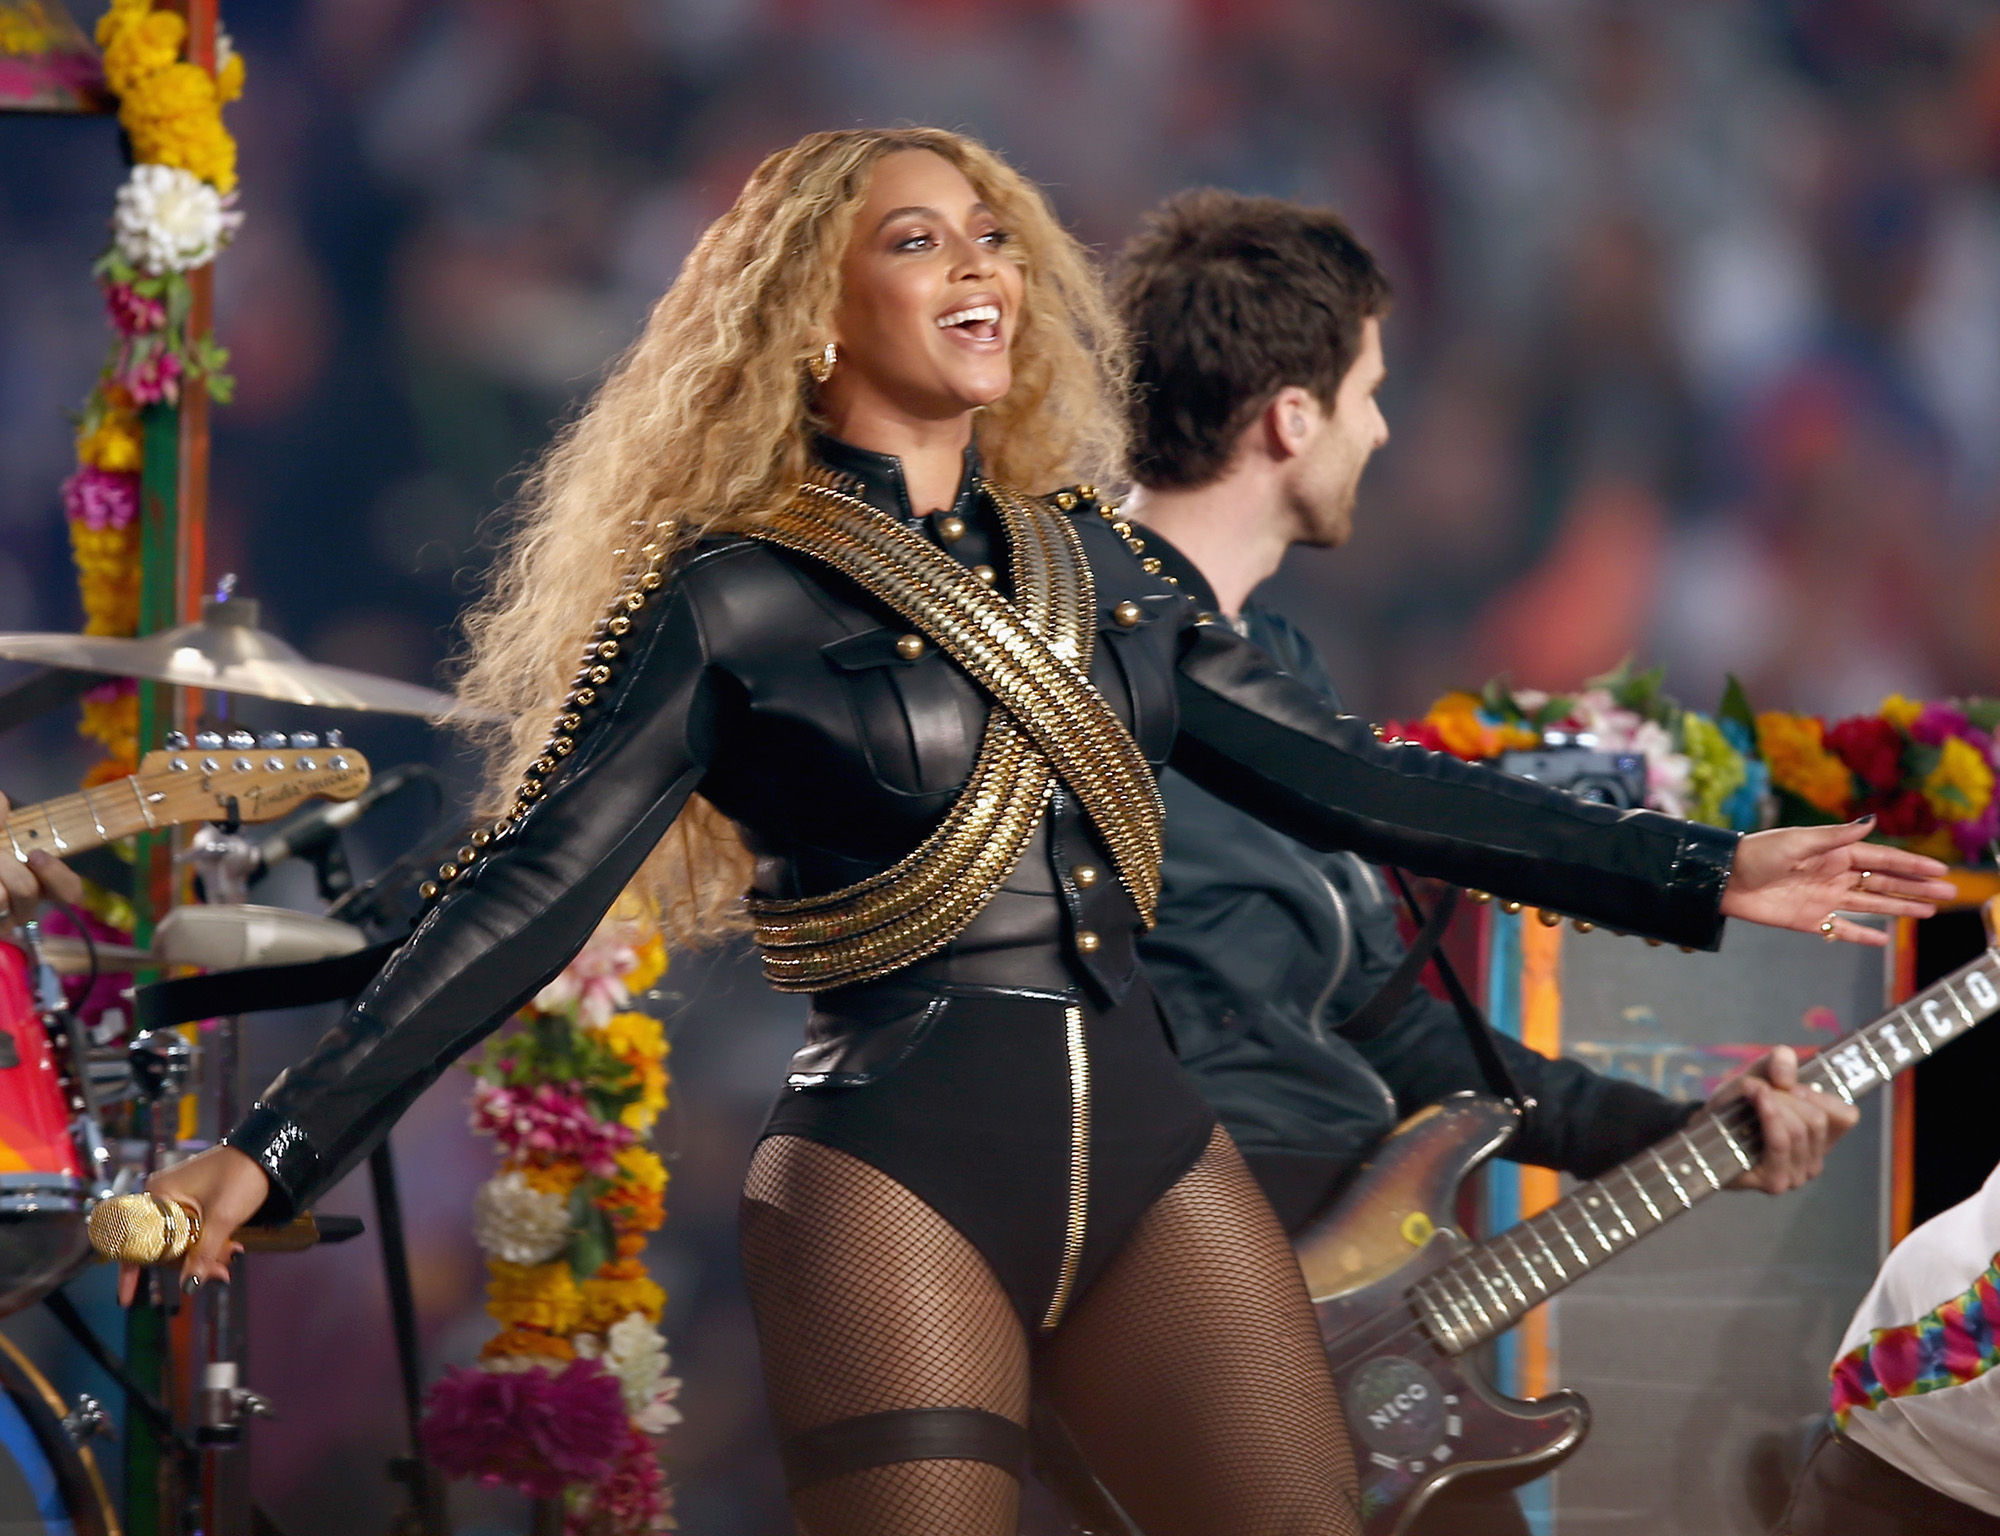 Beyonce (R) performs onstage during the Pepsi Super Bowl 50 Halftime Show at Levi's Stadium on February 7, 2016 in Santa Clara, California.  (Photo by Matt Cowan/Getty Images)